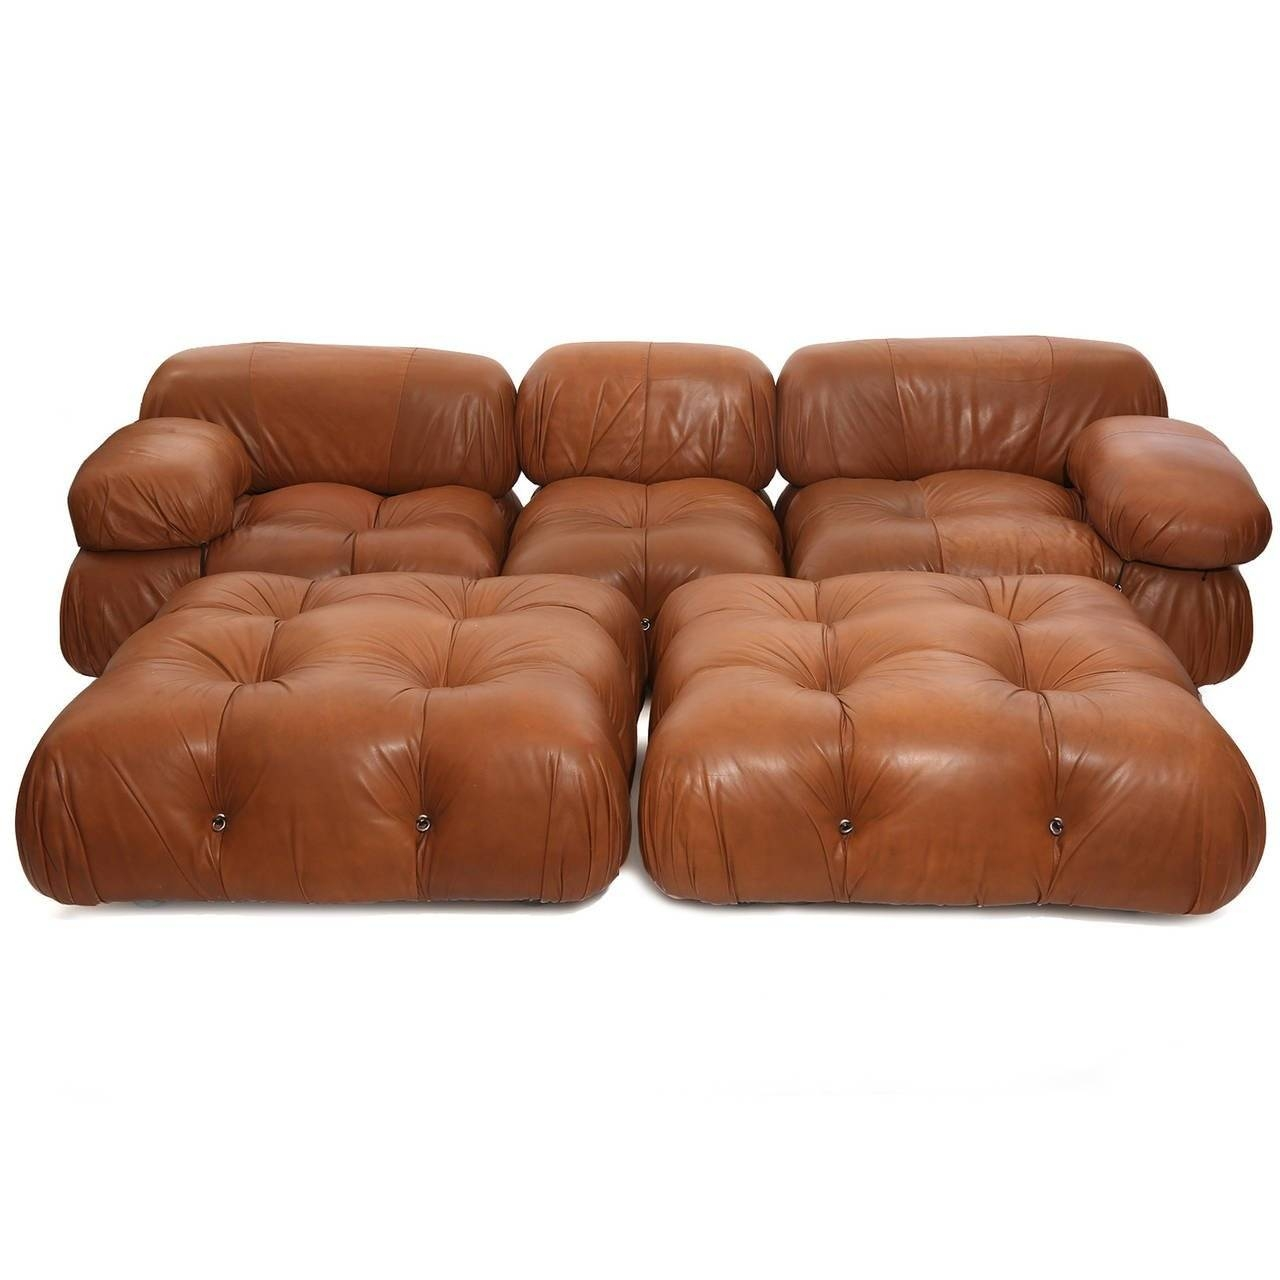 Rare Mario Bellini Camaleonda Sofa And Ottomans At 1Stdibs intended for Bellini Sofas (Image 13 of 15)